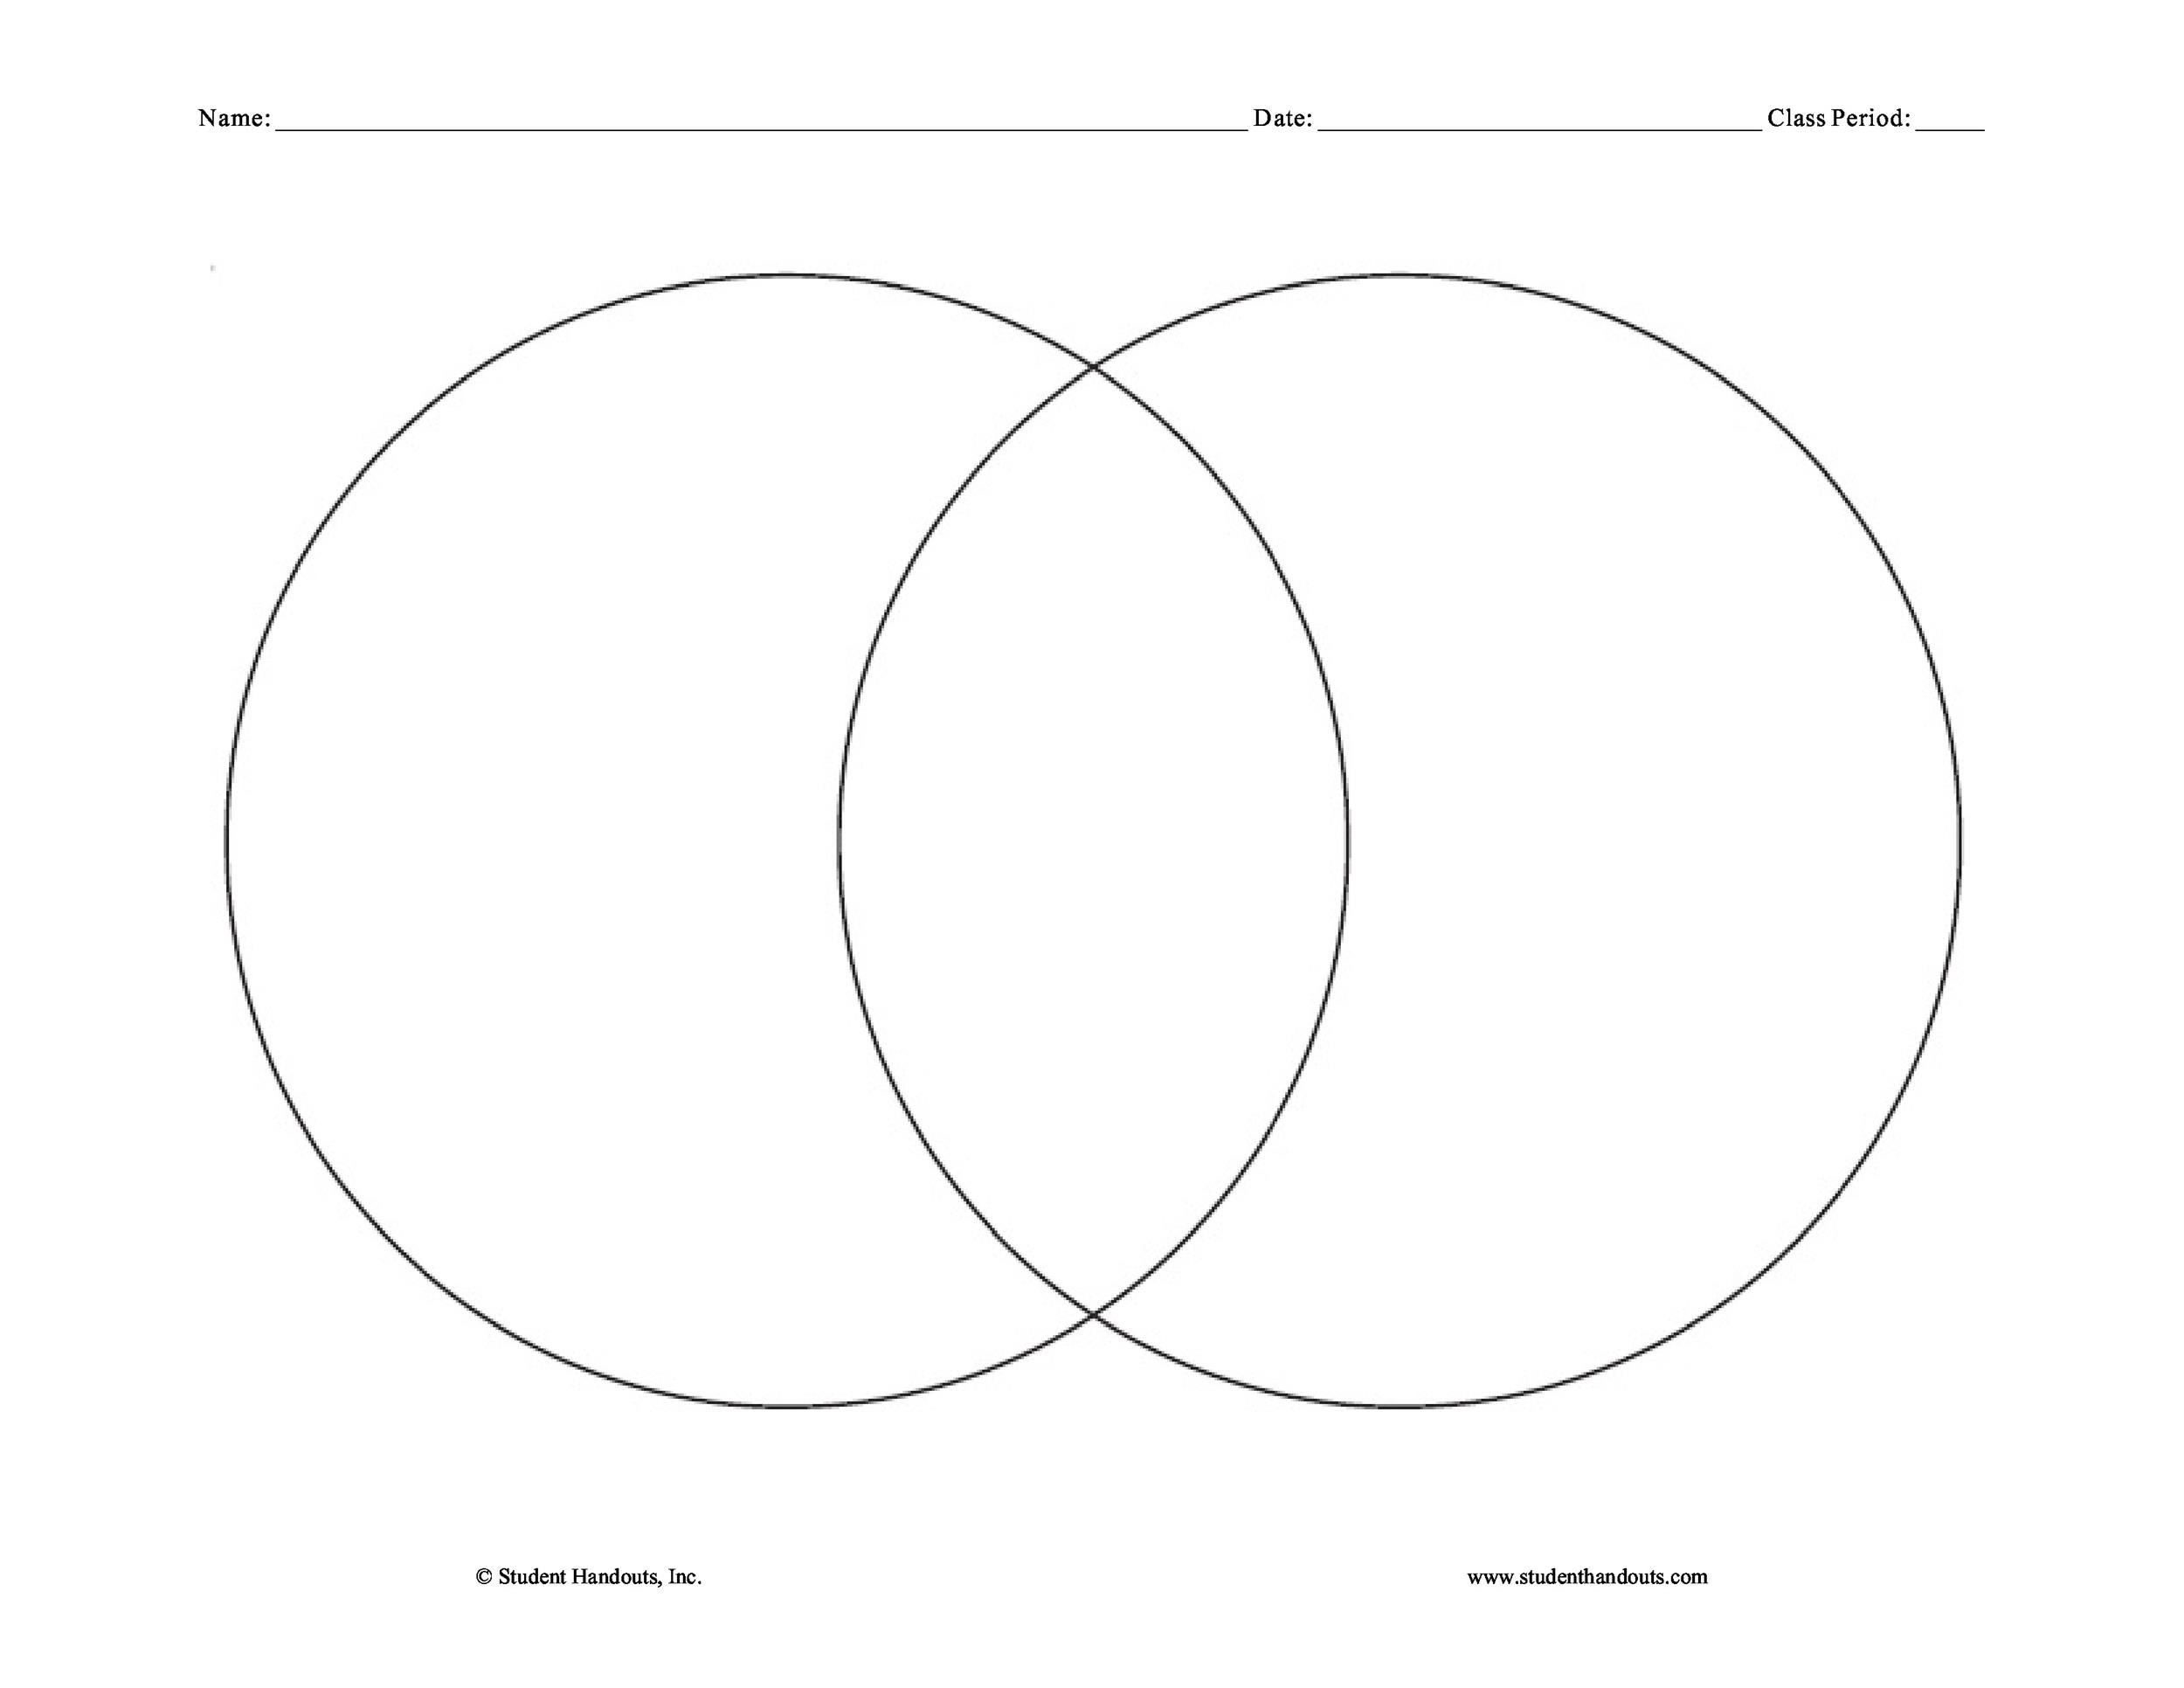 Diagram venn diagram template : 40+ Free Venn Diagram Templates (Word, PDF) - Template Lab